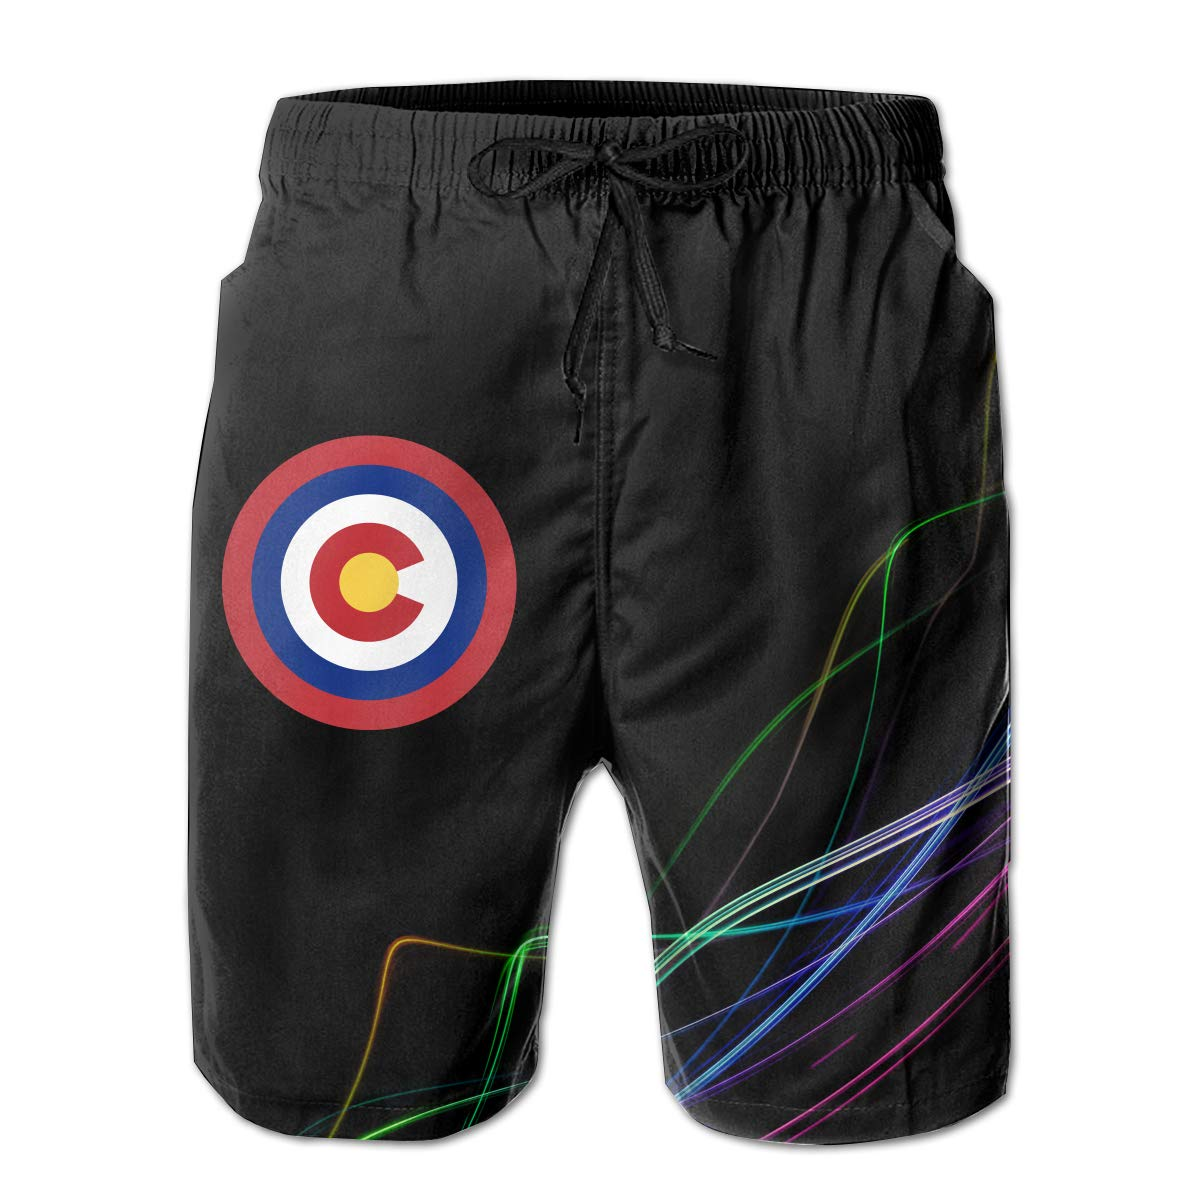 STLYESHORTS Colorado Captain Shield Mens Board Shorts Swim Trunks Beachwear Surf Board Beach Home Beach Trunks